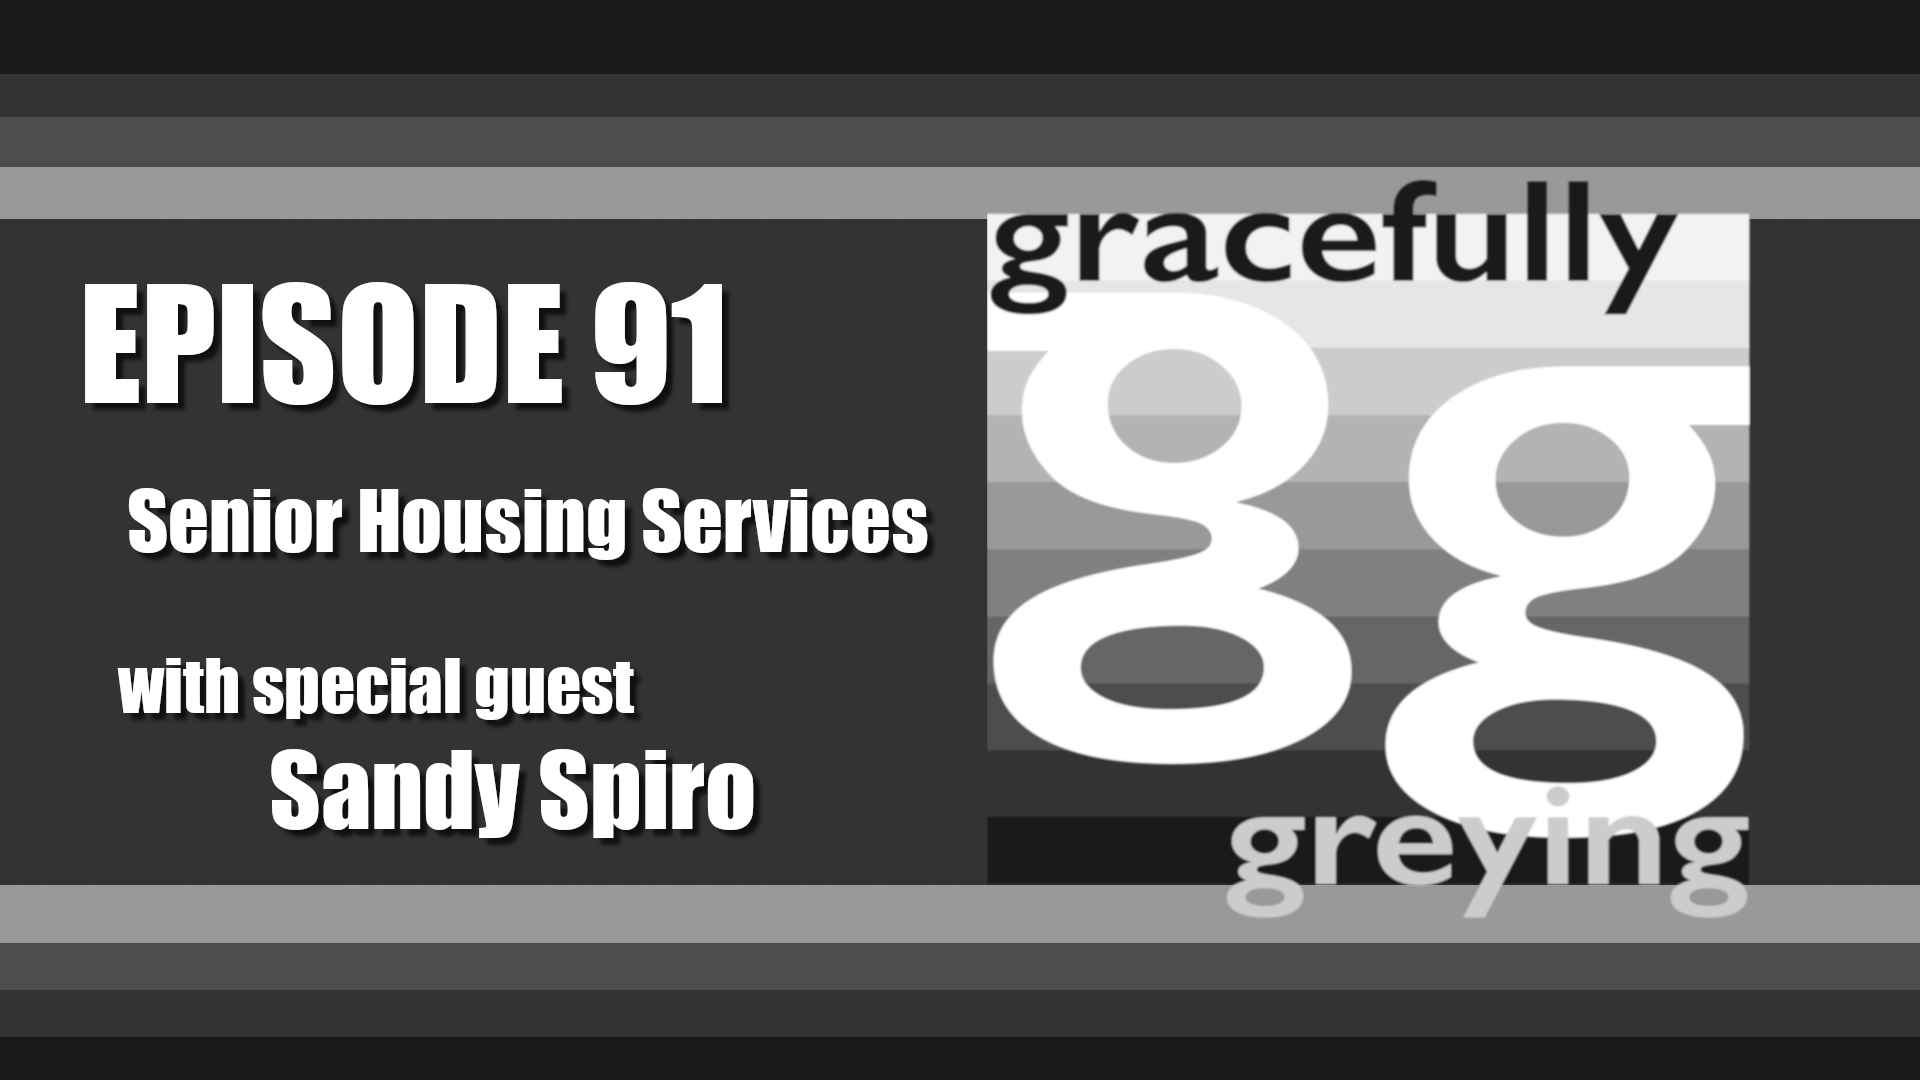 Gracefully Greying - Episode 91